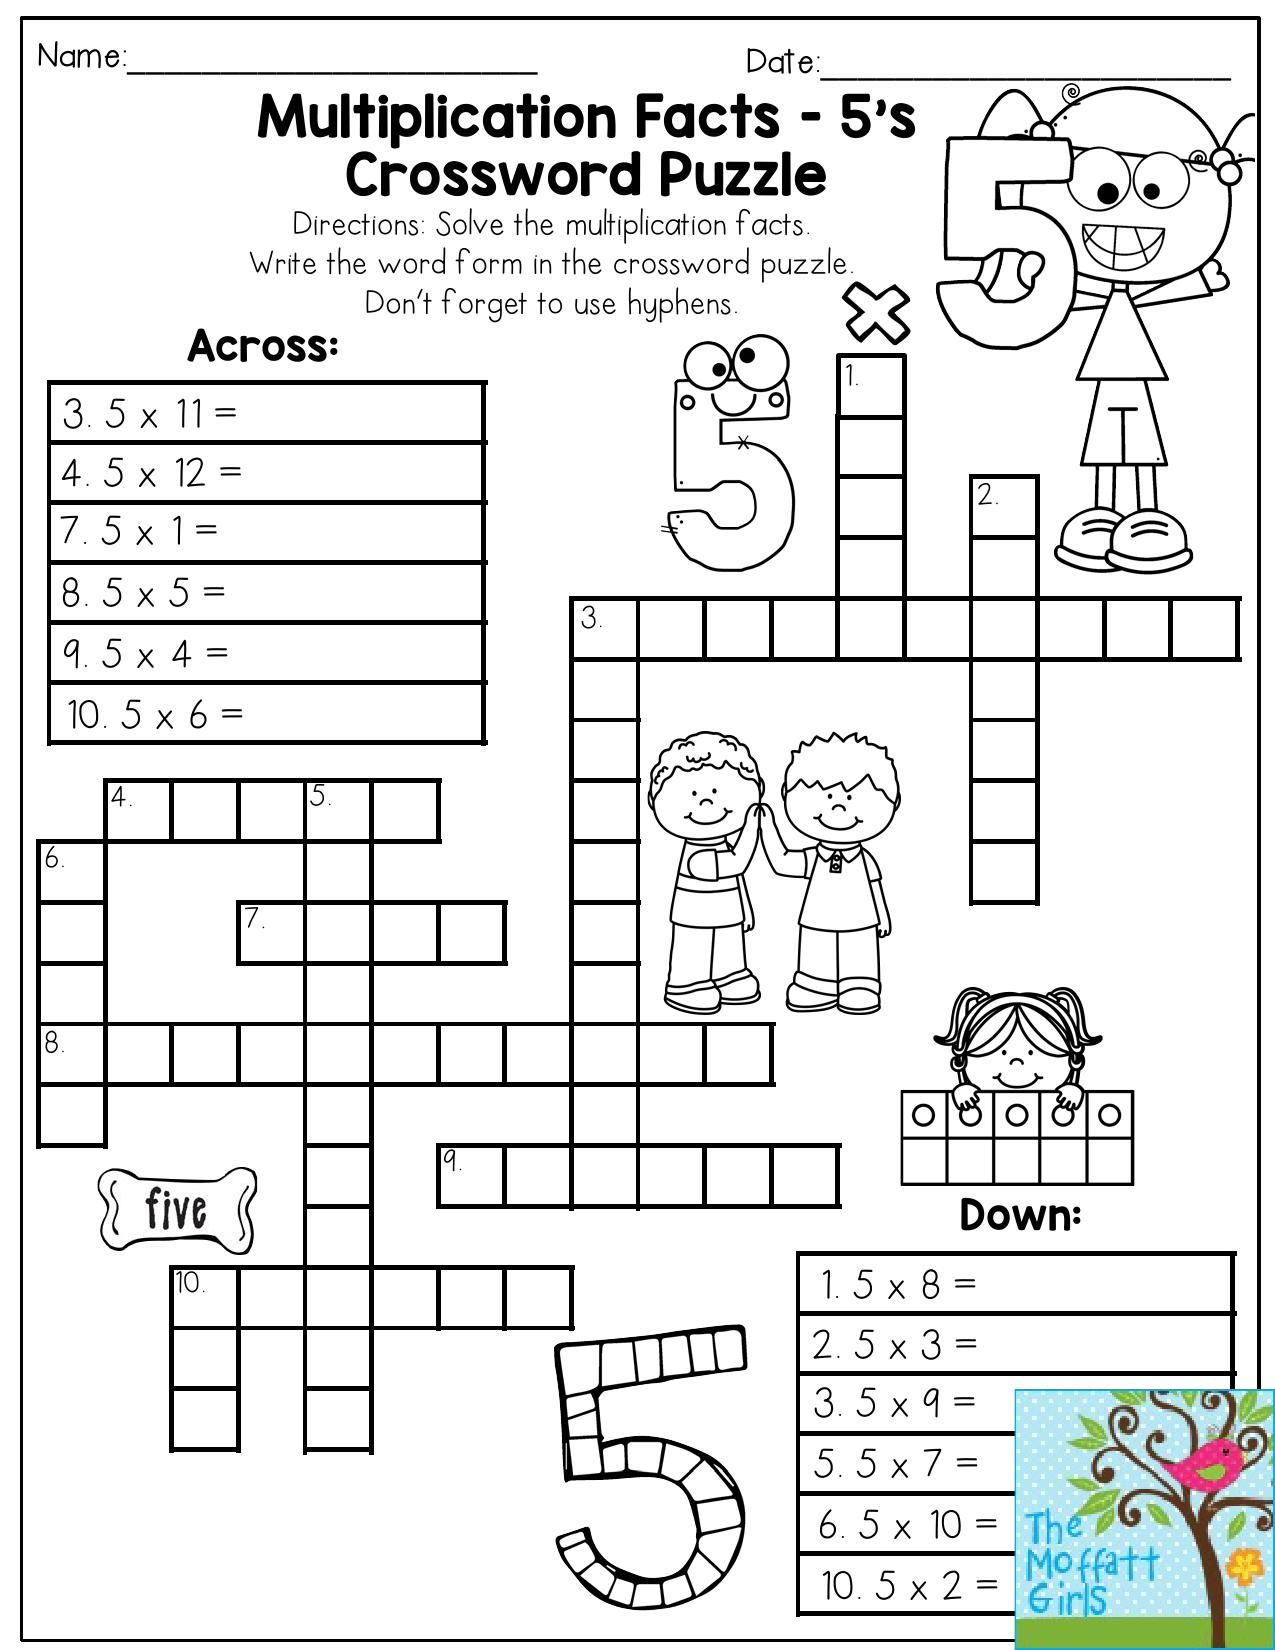 Multiplication Facts Crossword Puzzle- Third Grade Students Love - Printable Crossword Puzzle For Grade 5